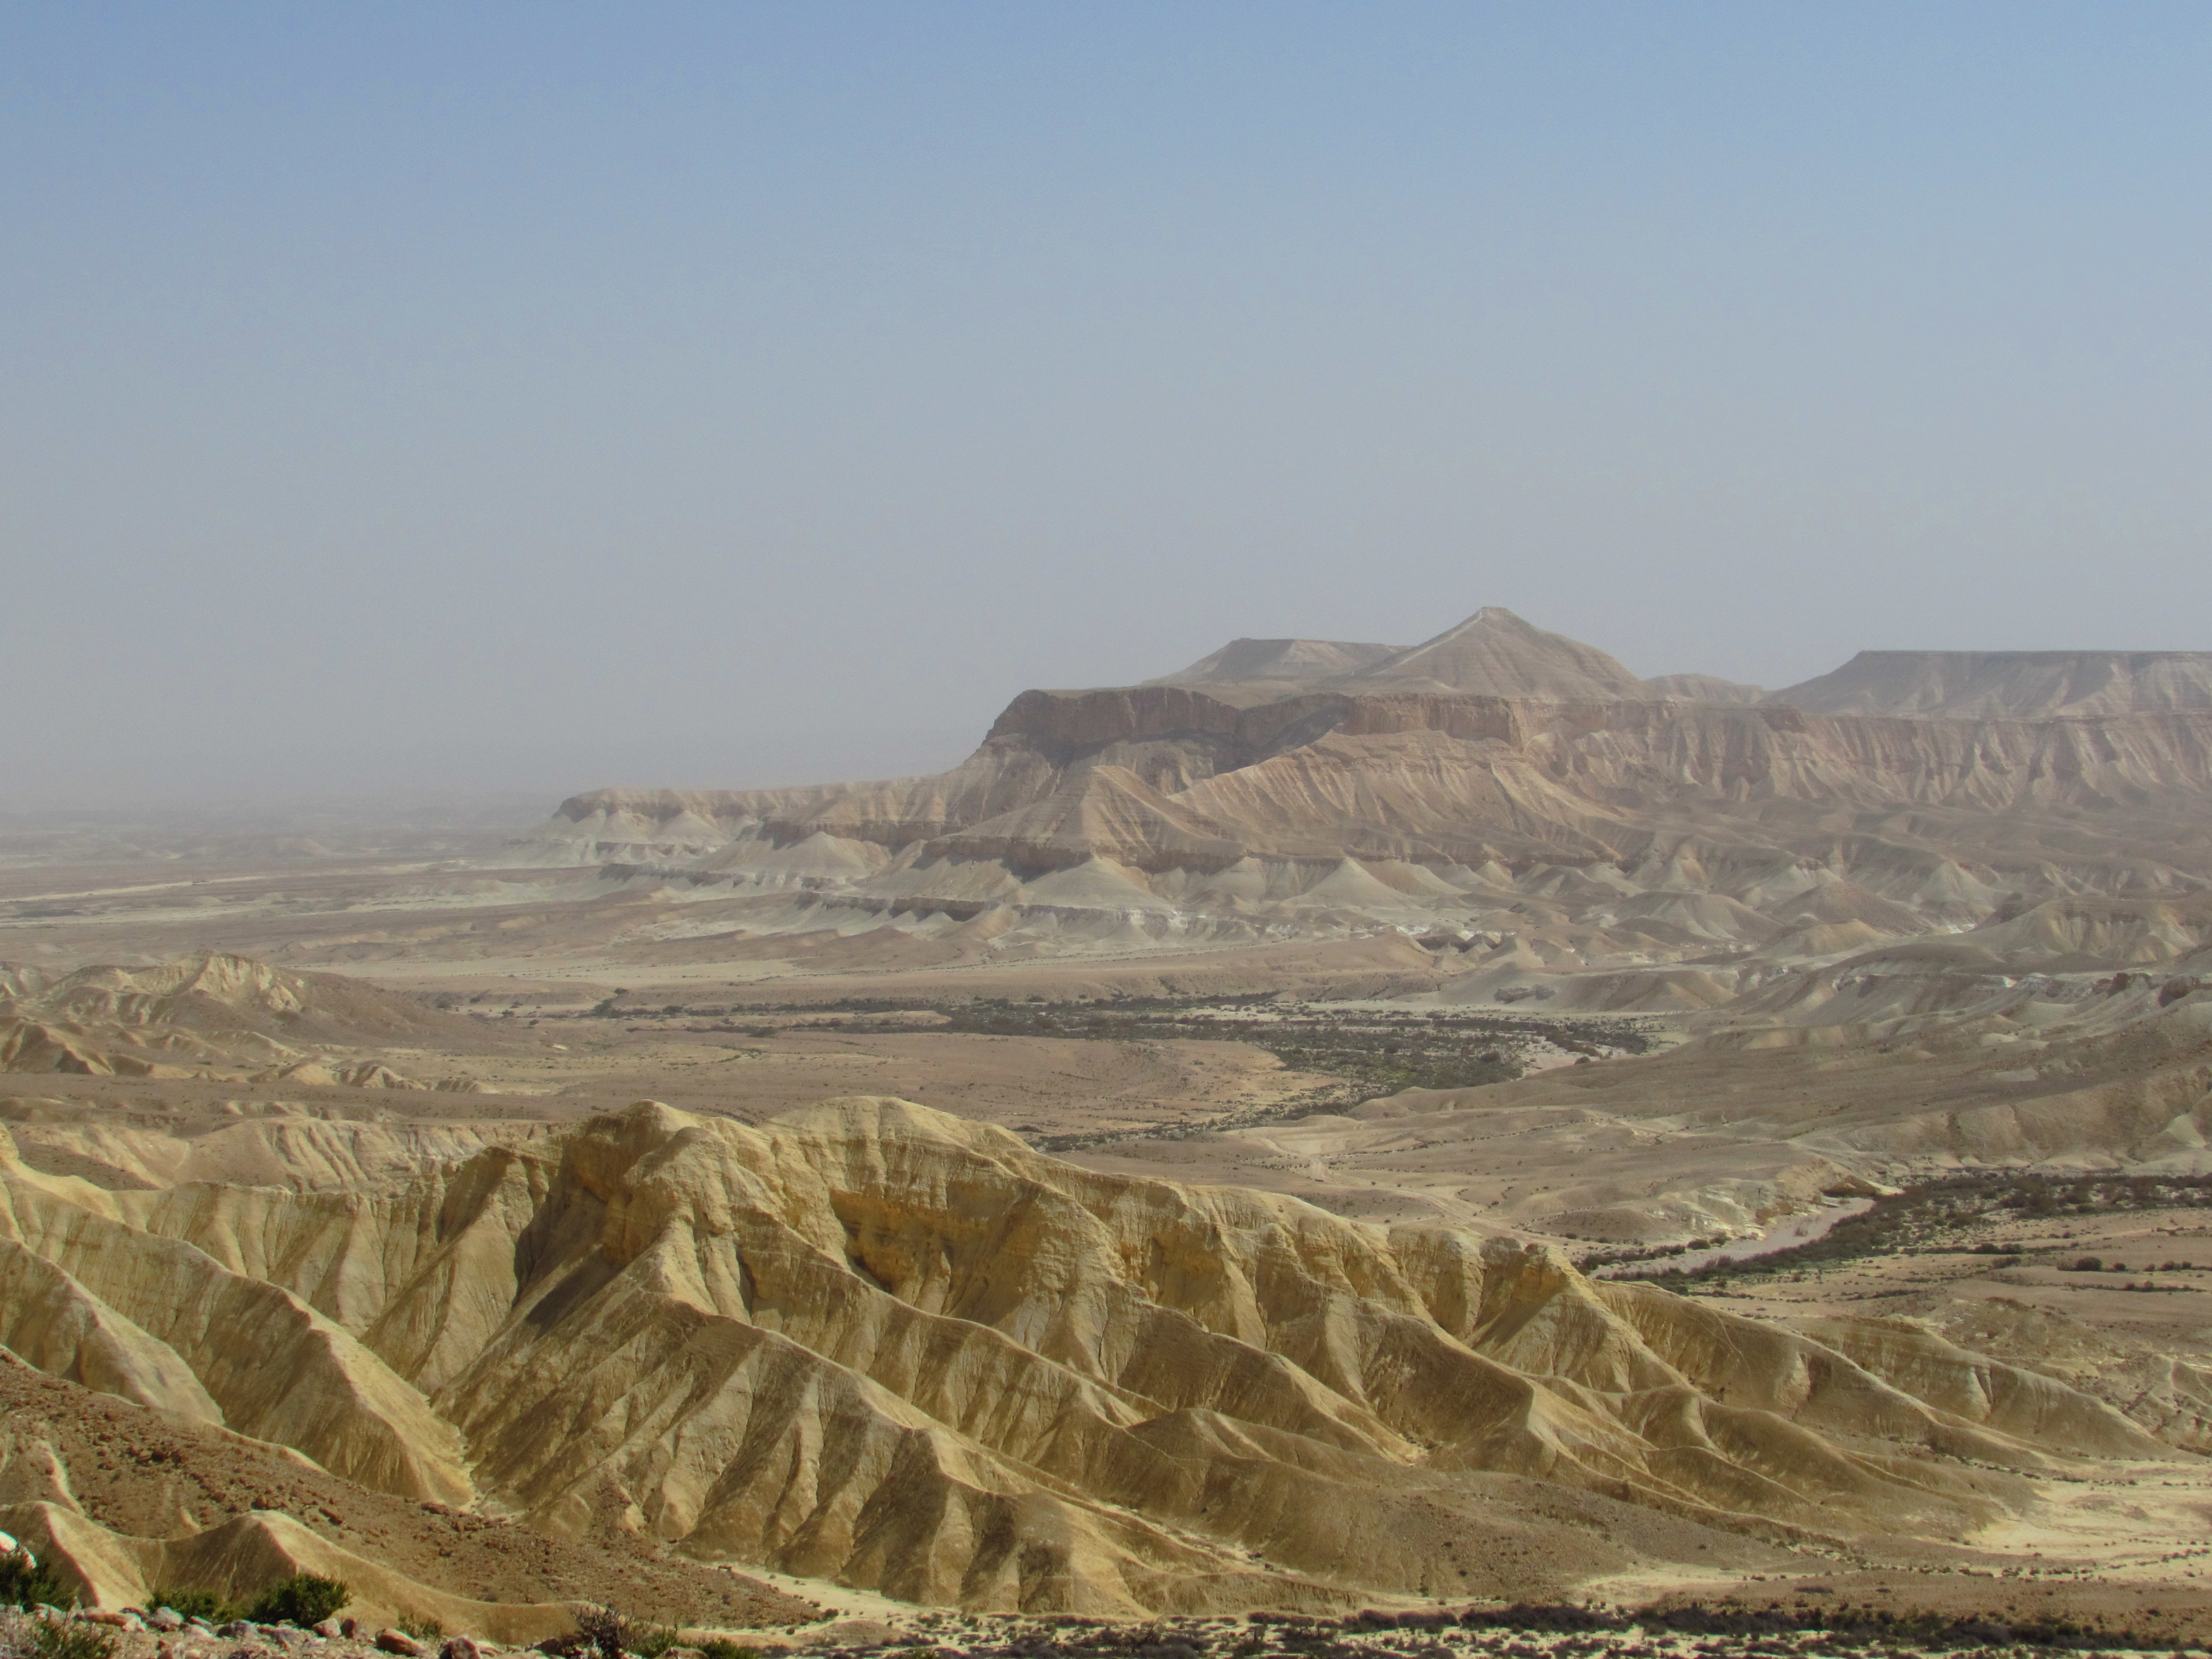 In the heart of the Negev Desert, in Southern Israel